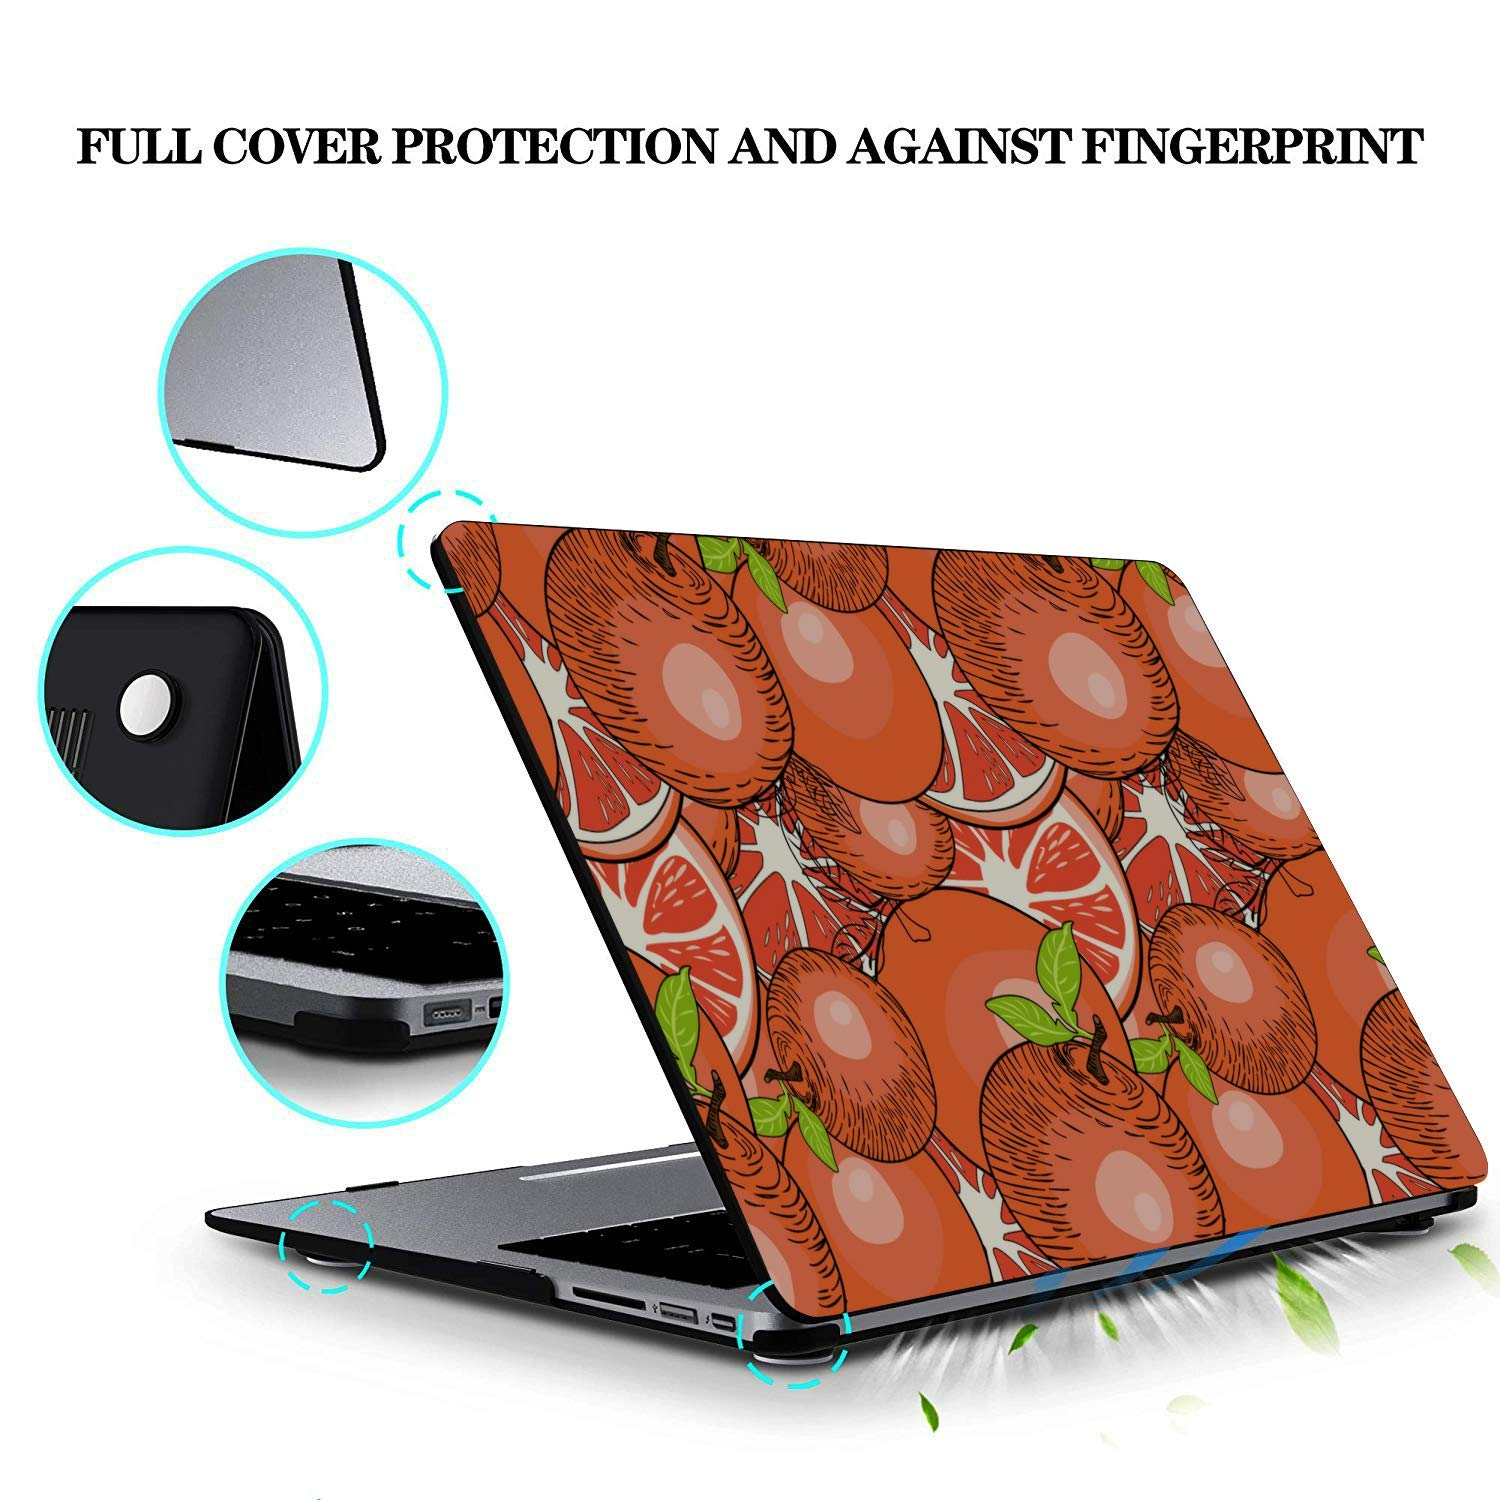 Mac Computer Case Summer Fruit Grapefruit Green Leaf Plastic Hard Shell Compatible Mac Air 11 Pro 13 15 Mackbook Pro Case Protection for MacBook 2016-2019 Version